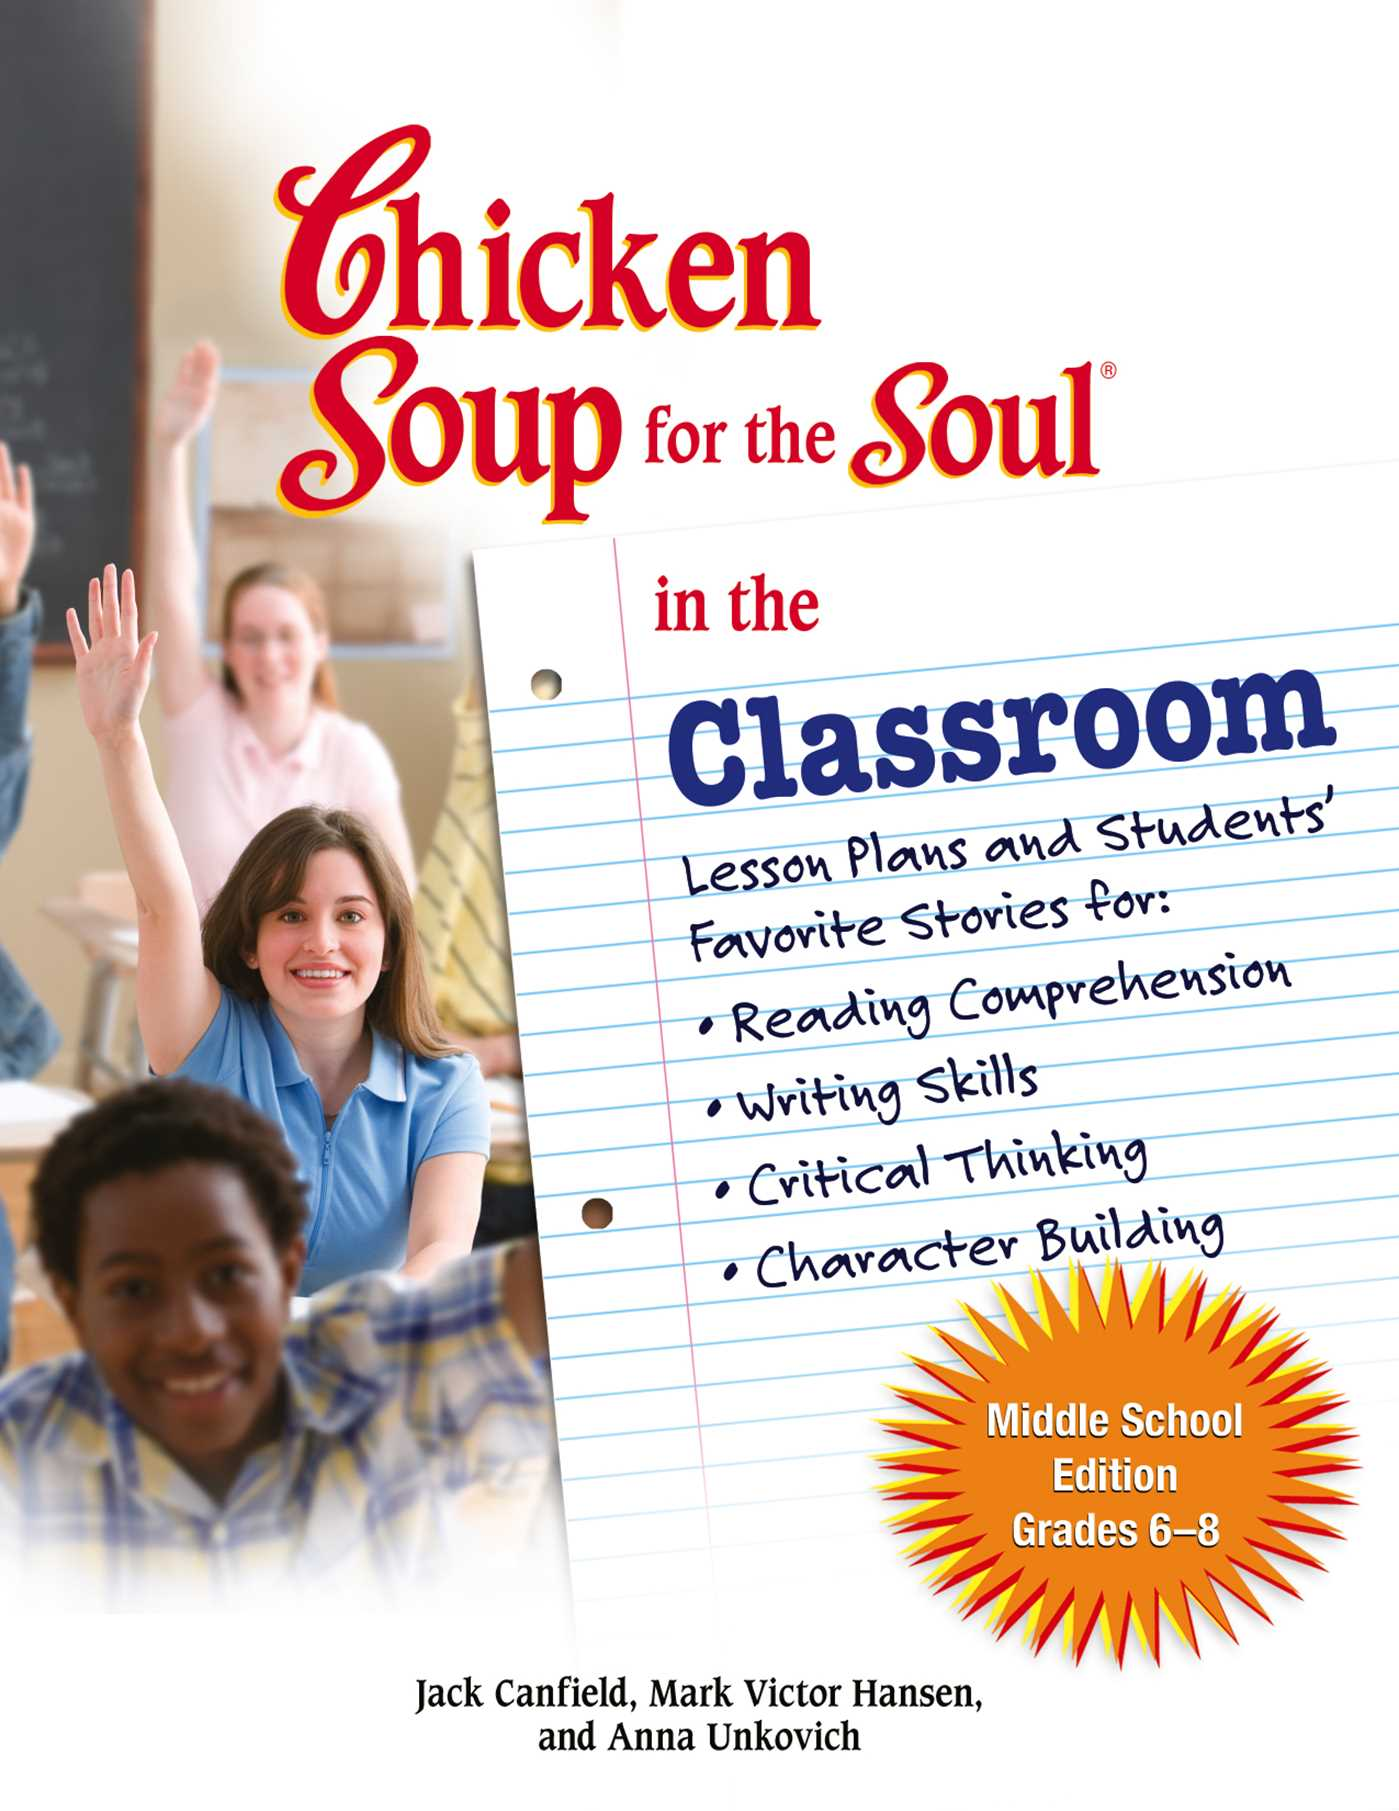 critical thinking lesson plans for middle school Process on critical thinking, two lesson plans which can be helpful in effectively teaching critical thinking, a case study which lends itself to thinking critically to come to a desirable resolution, and lastly, some recommended reading resources for providing a foundation to and.